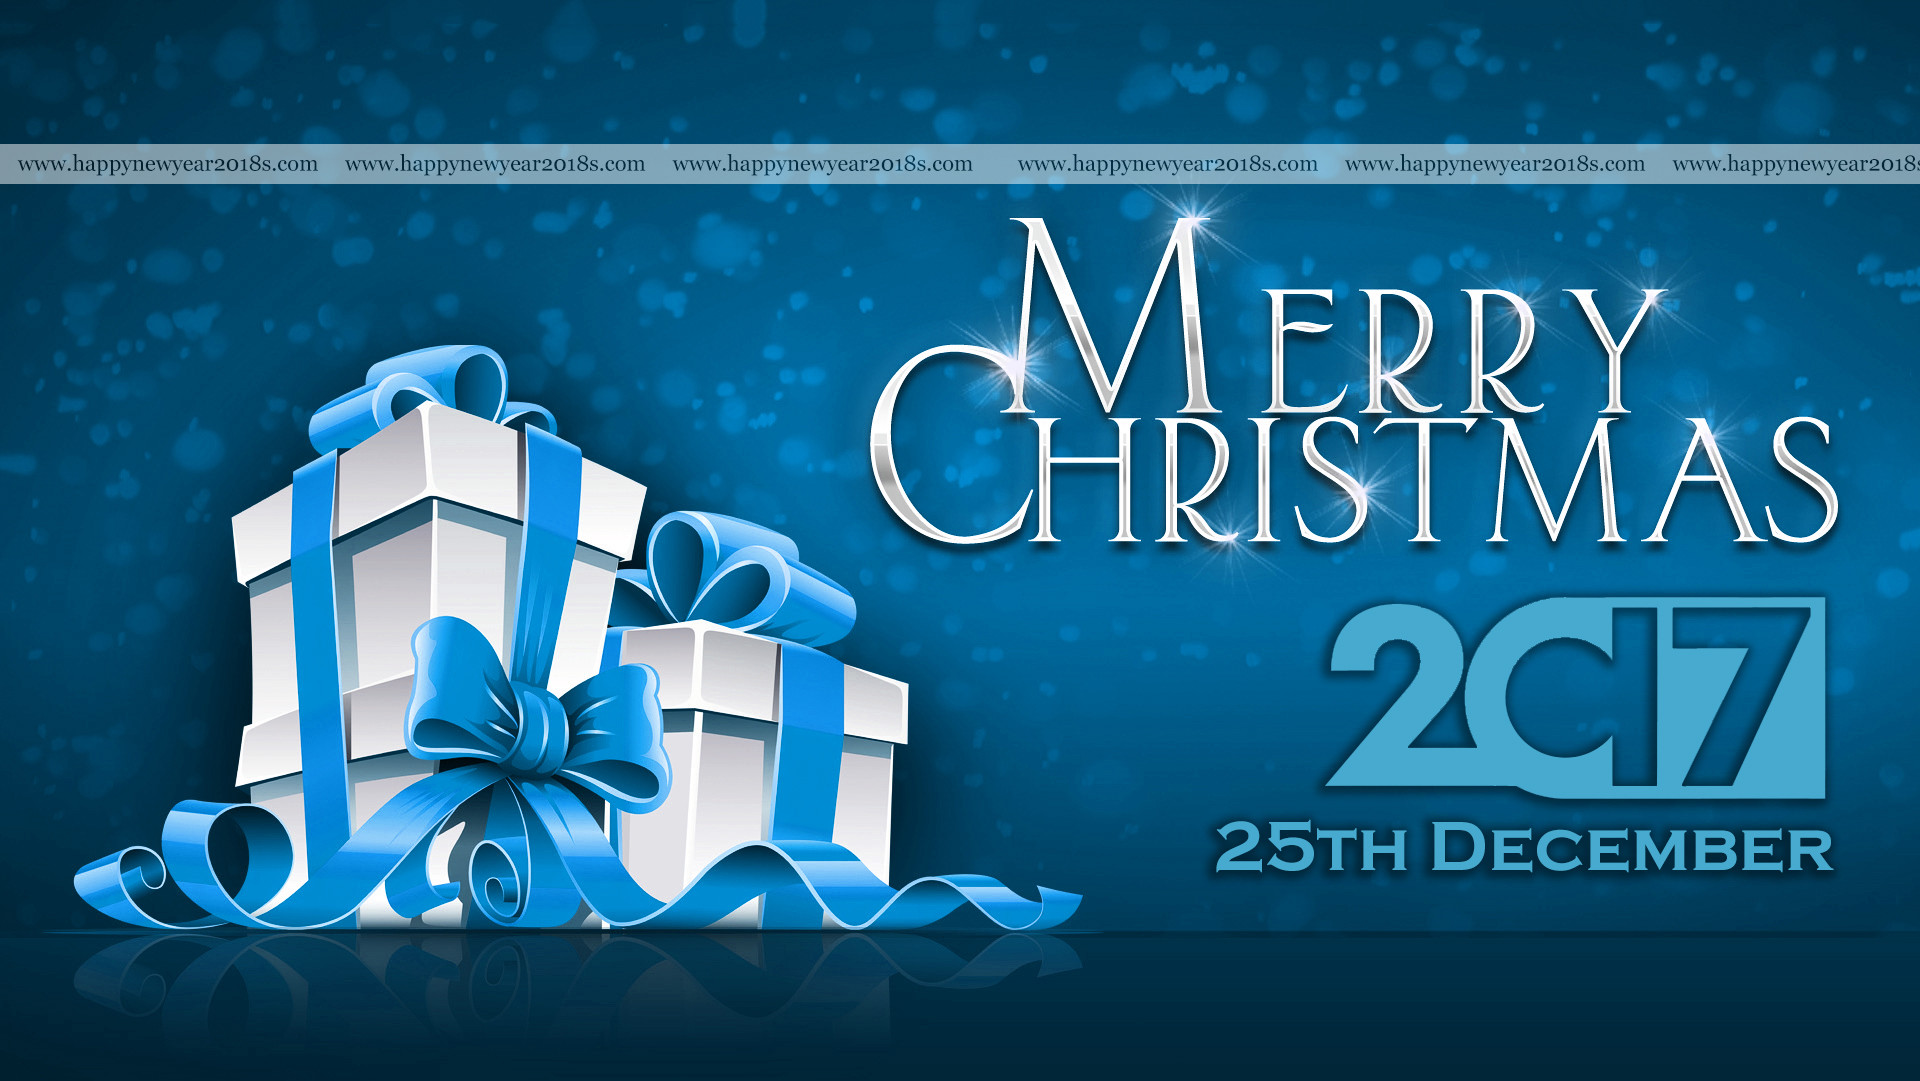 Merry Christmas 2017 Images, Pictures, Wallpapers // Happy New Year 2018  Images, Pictures, Wallpapers